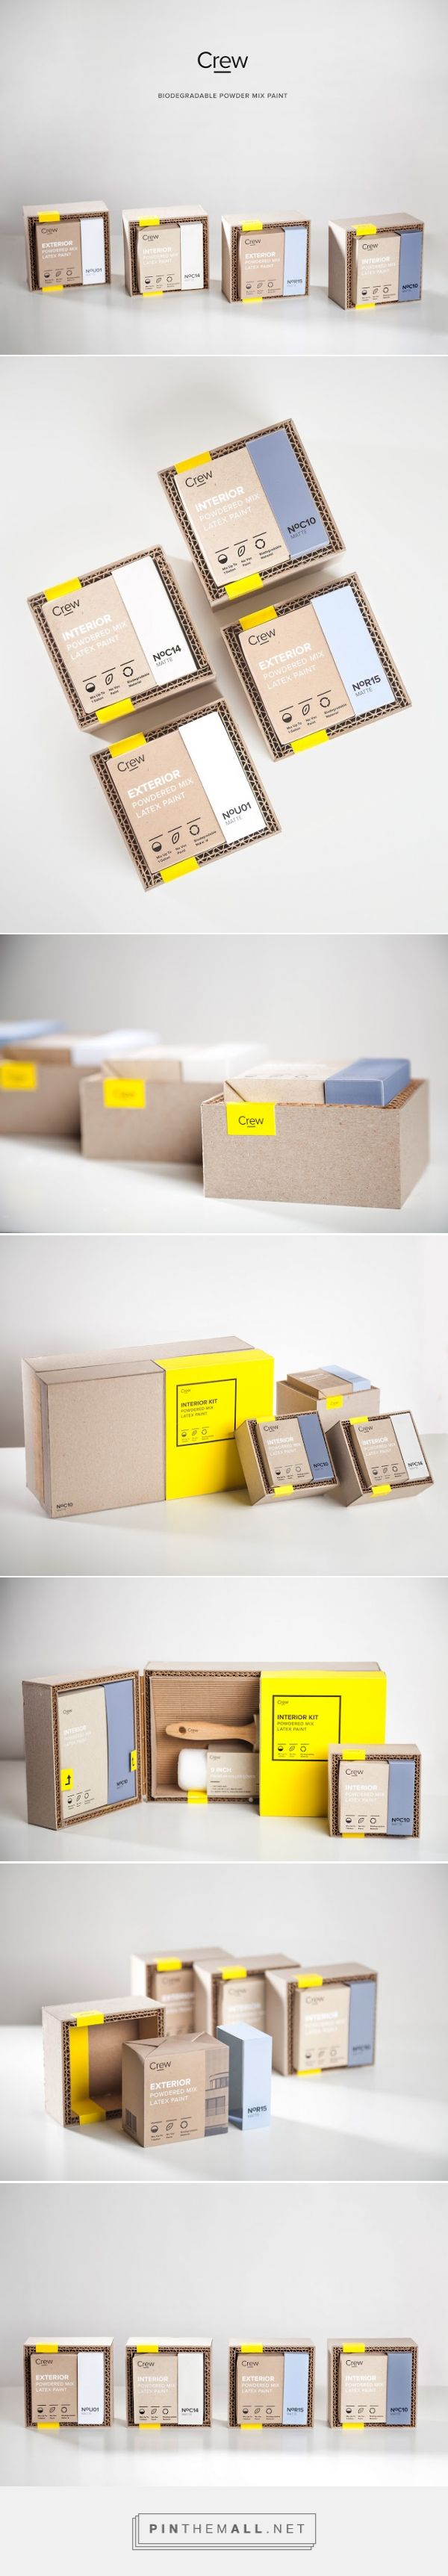 Crew Paint Kit Packaging designed by Alireza Jajarmi - http://www.packagingoftheworld.com/2015/12/crew-paint-kit.html